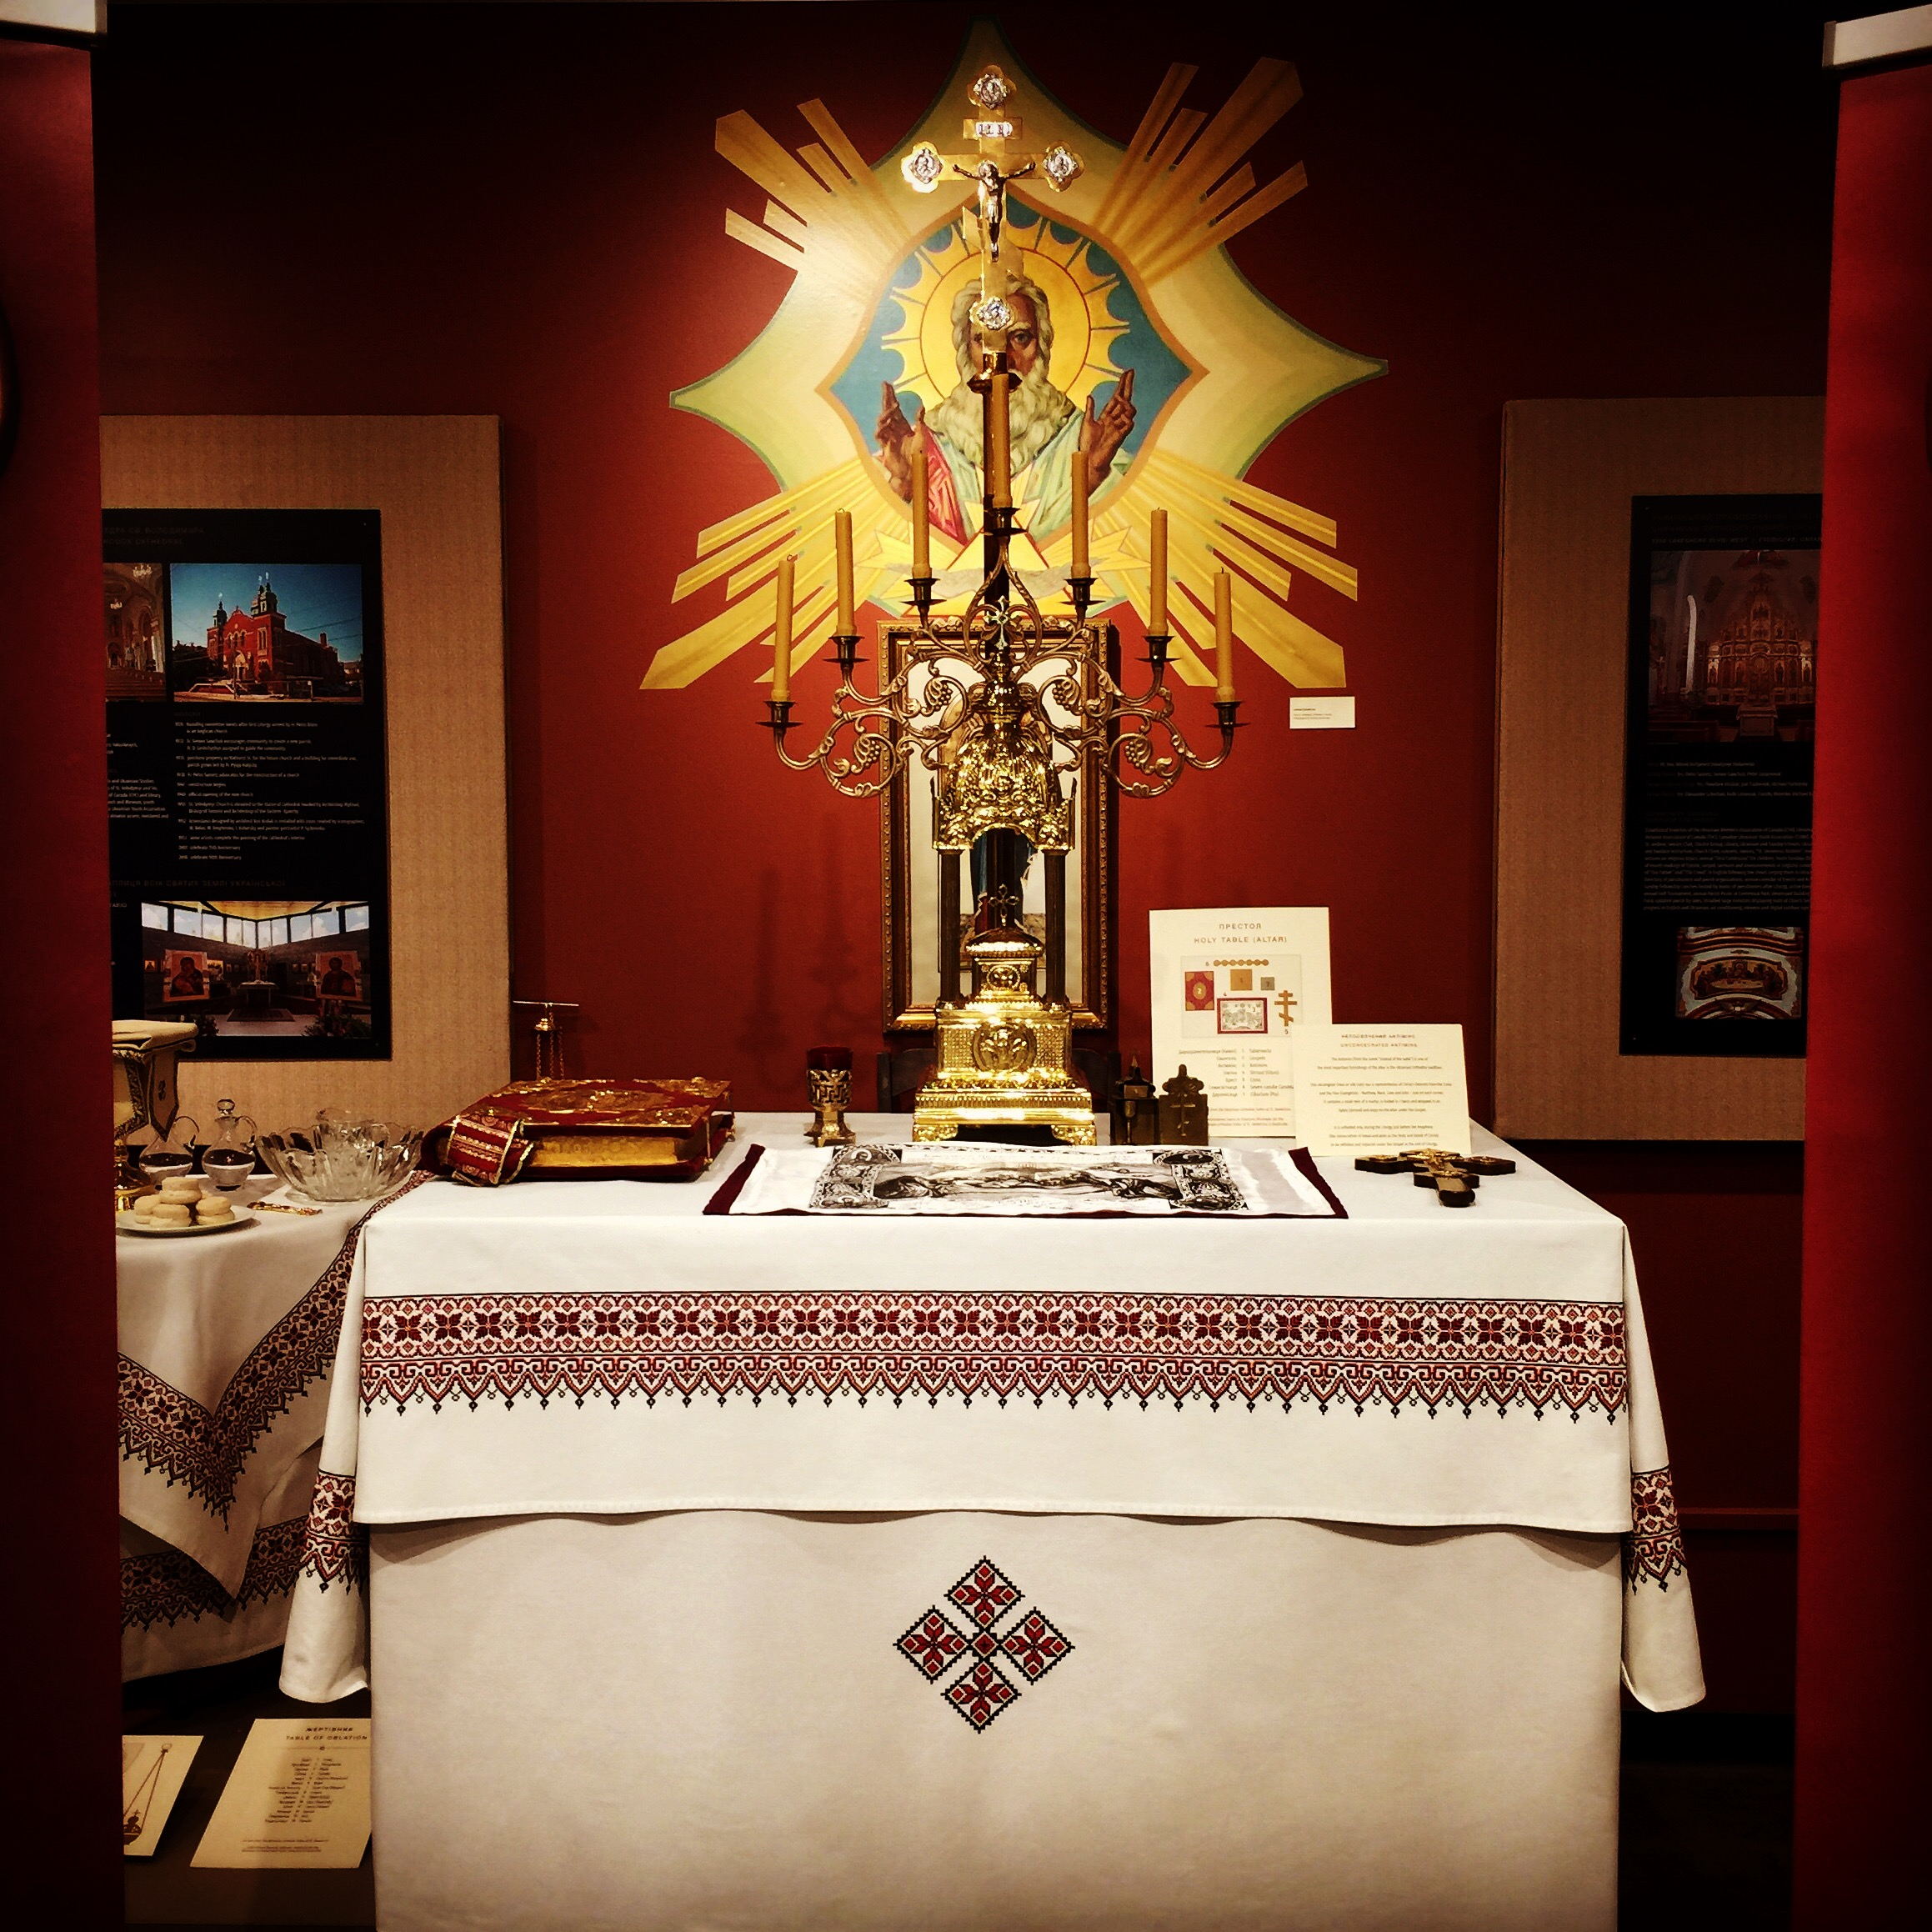 Altar - Holy Table Престол - The Altar is also called the Holy Table. Upon it are the Tabernacle, the Gospels, the Antimins, the Shroud (Ilyton), the Cross, a seven-candle Candelabrum and the Ciborium (Pyx).